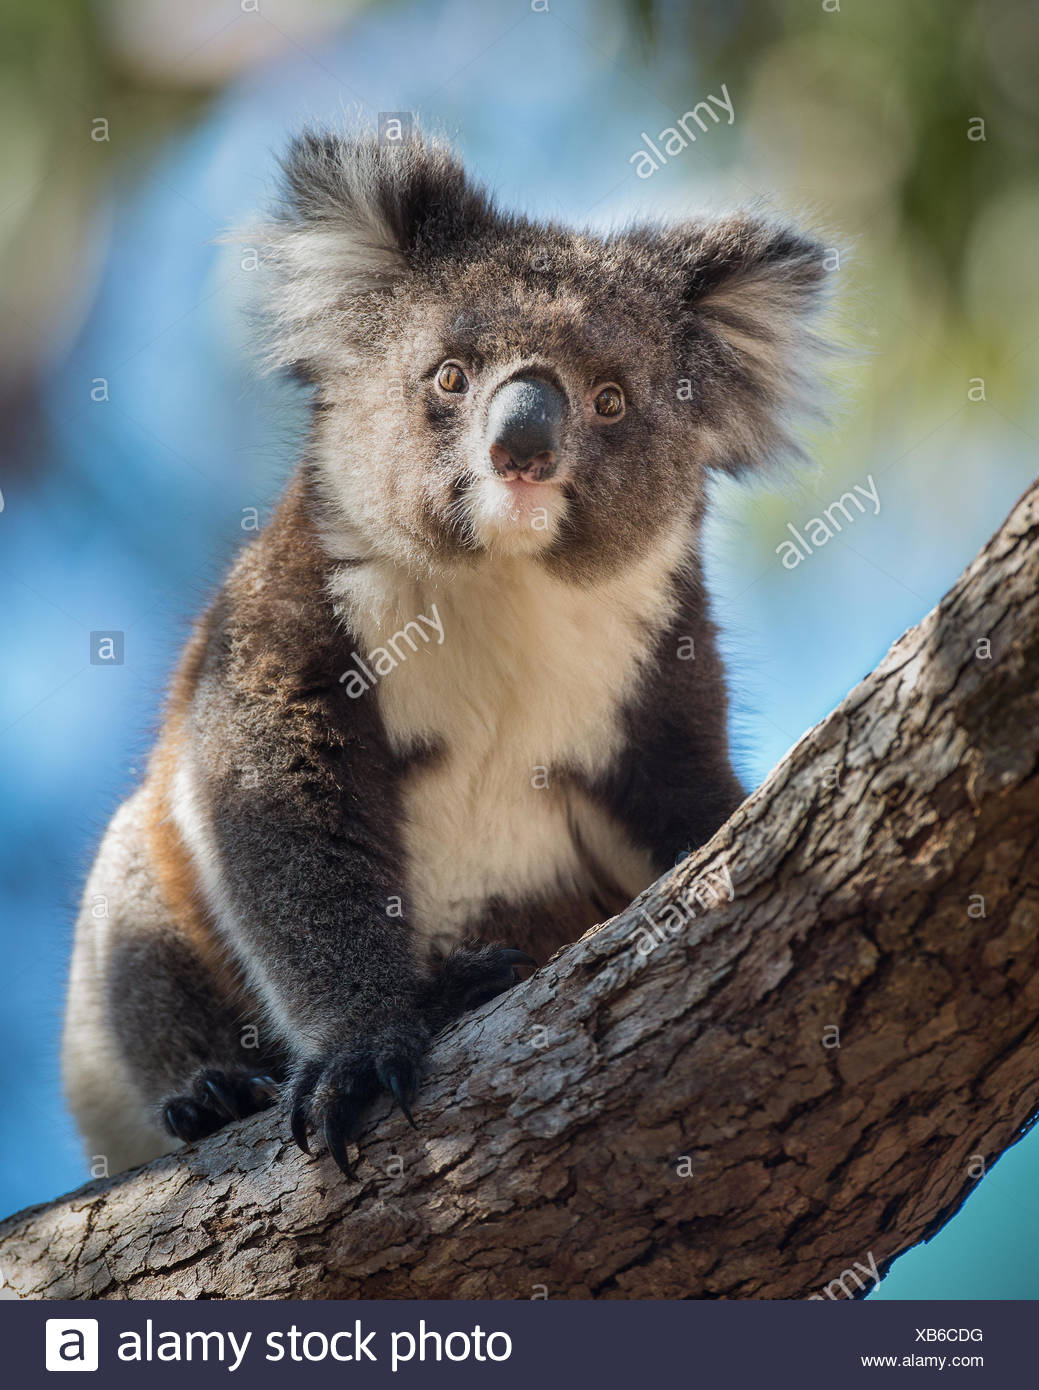 A koala, Phascolarctos cinereus, sitting upright in a  tree. - Stock Image